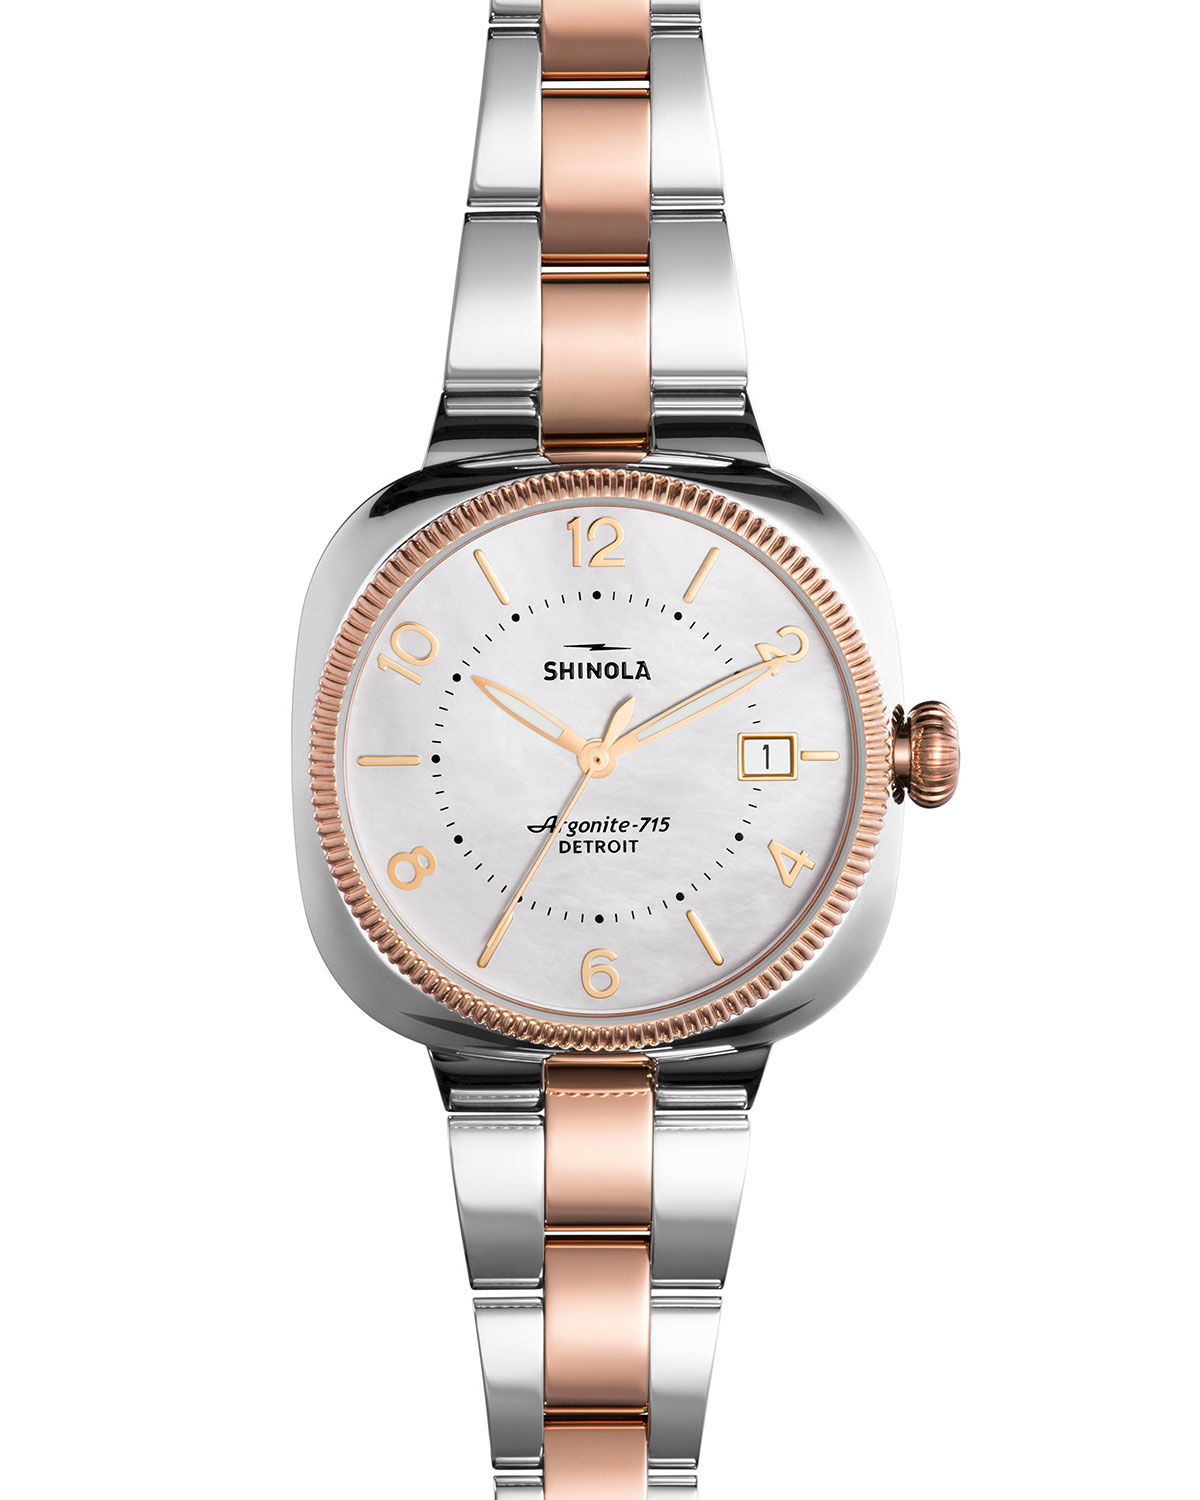 Shinola 36mm Gomelsky Watch With Bracelet Strap in Pink